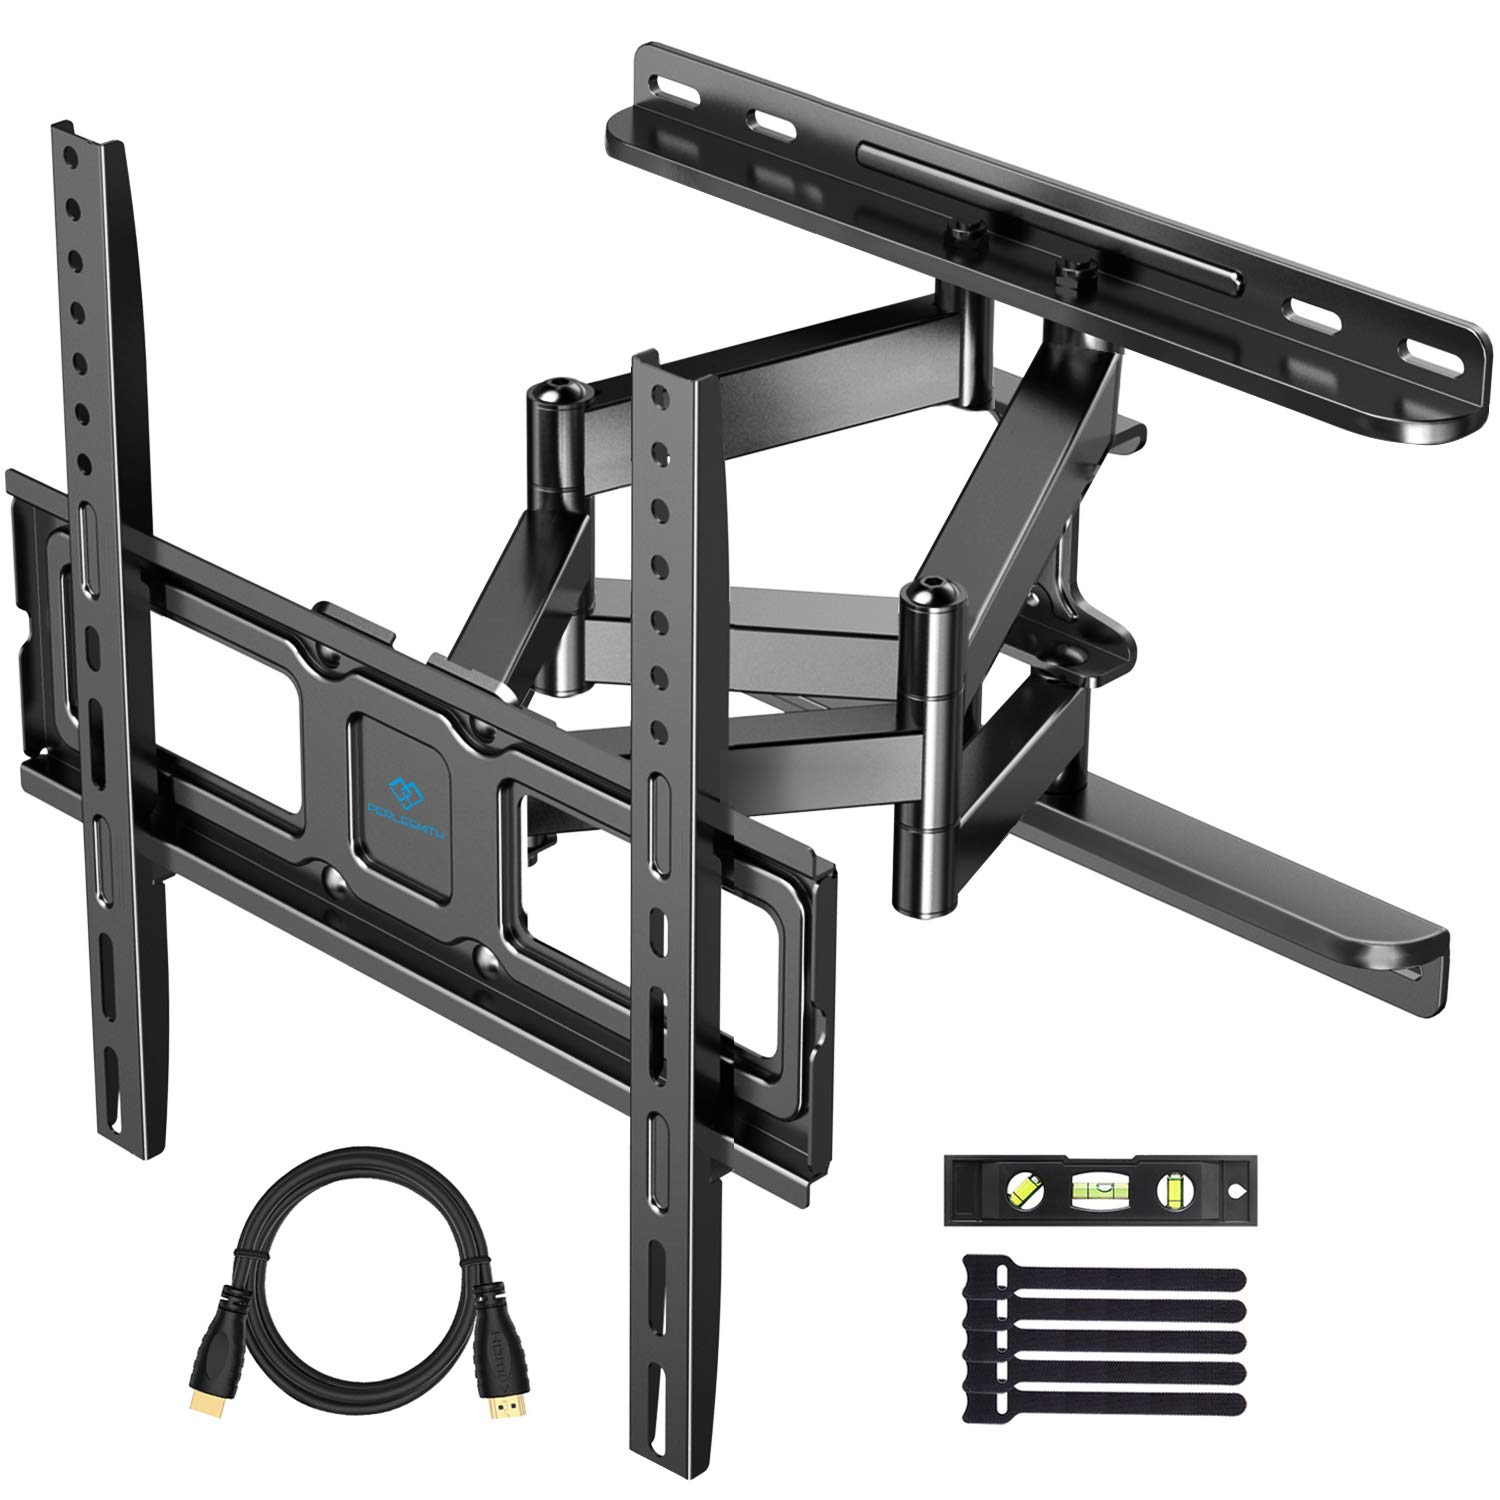 PERLESMITH TV Wall Mount for Most 32-55 Inch TVs with Swivel & Extends 16.53 Inch - Dual 6 Arms Wall Mount TV Bracket VESA 400x400 Fits LED, LCD, OLED Flat Screen TVs up to 99 lbs